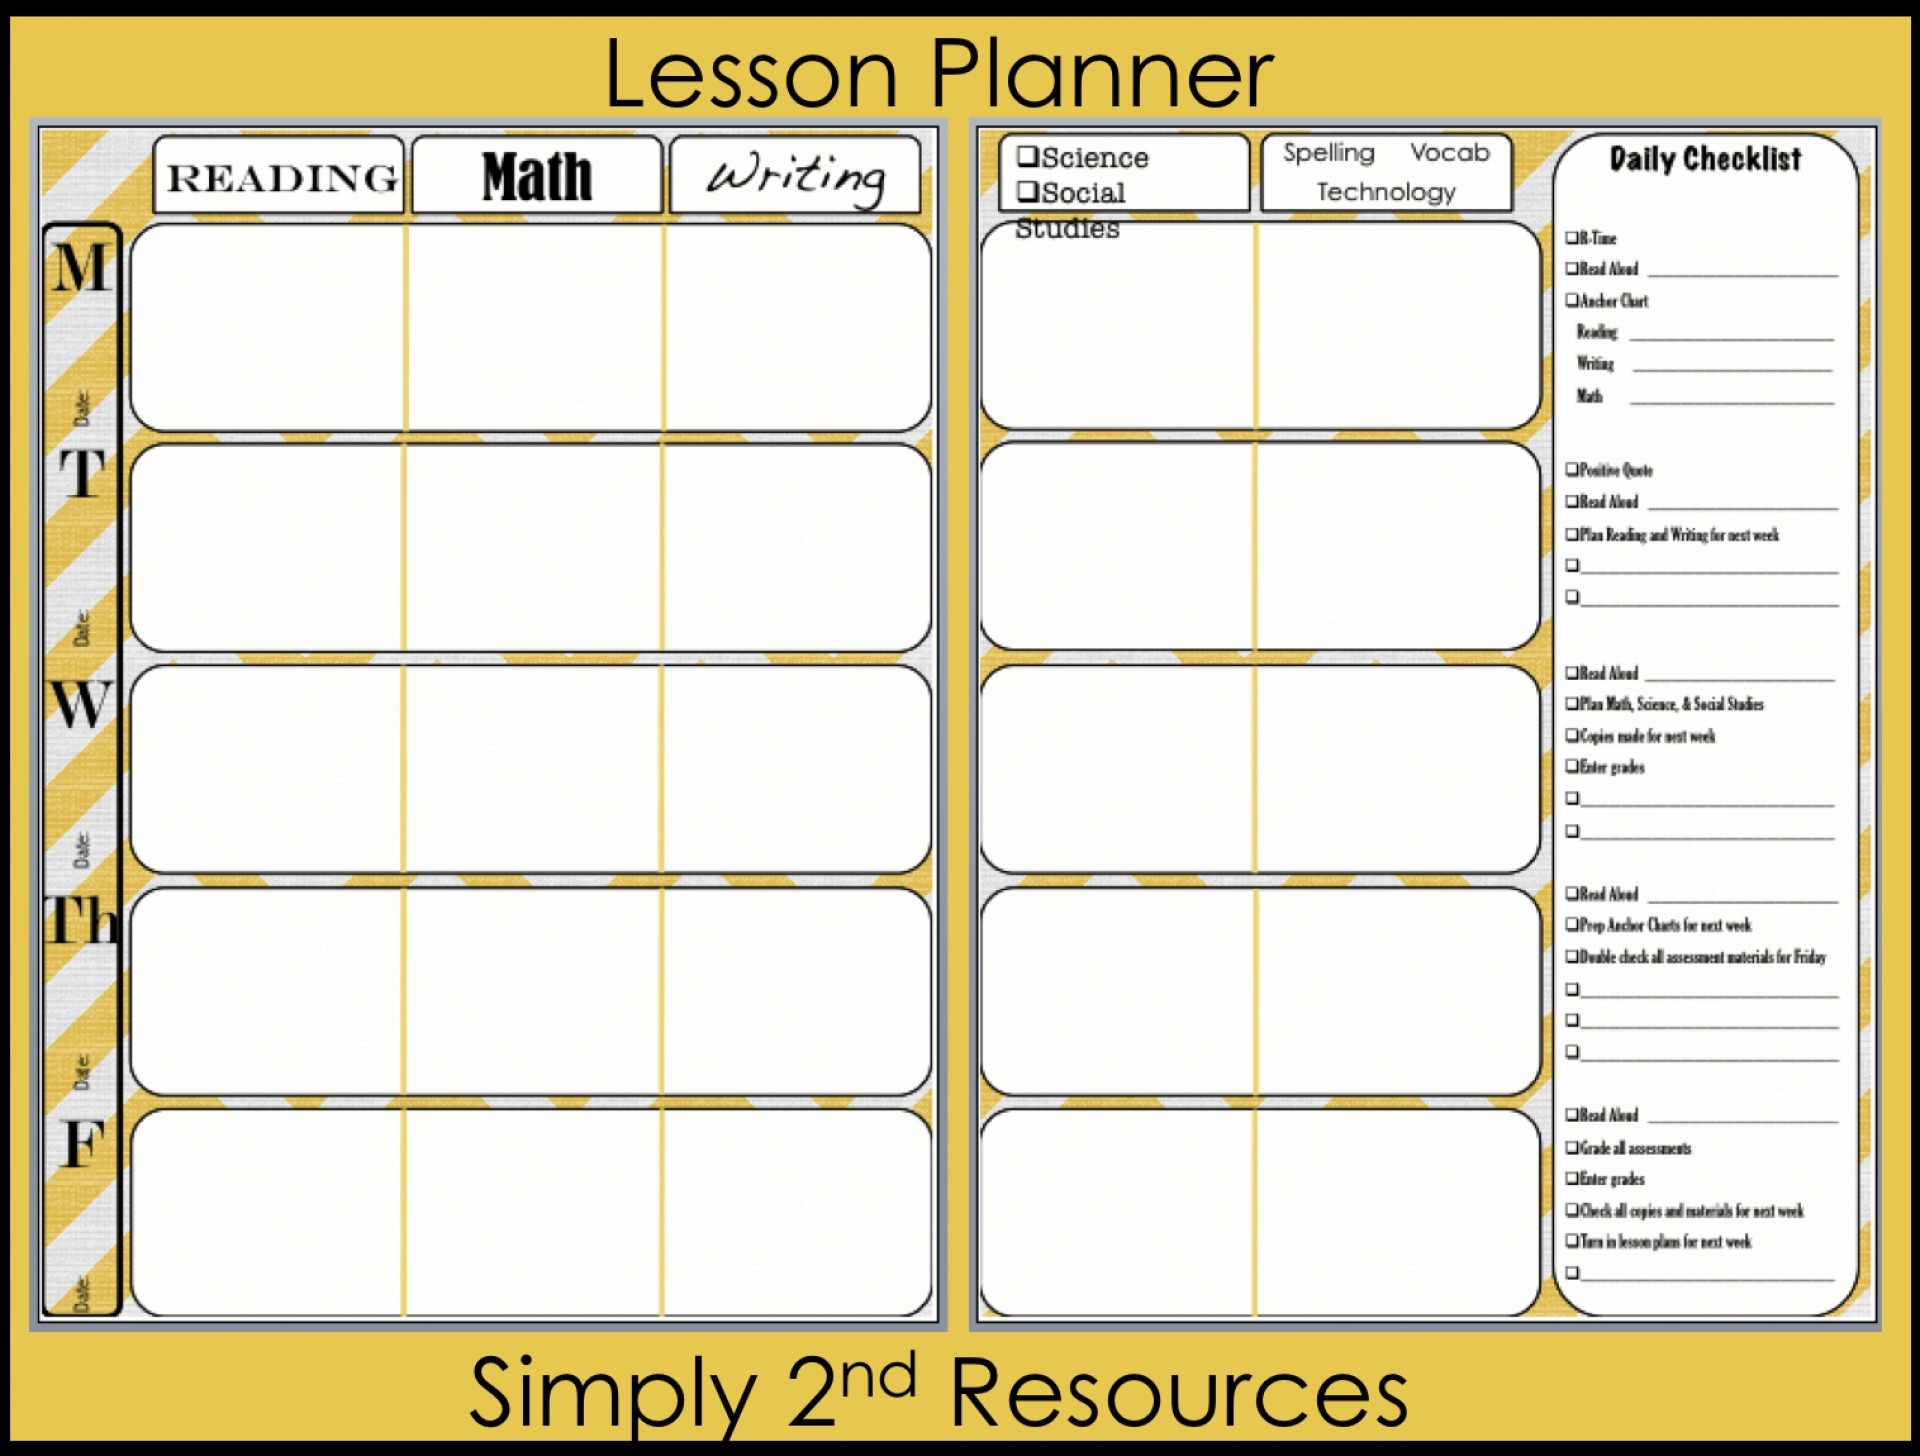 021 Plan Template Homeschool Lesson Excel Free Weekly Elegant Design in Weekly Calander Lesson Plan Template